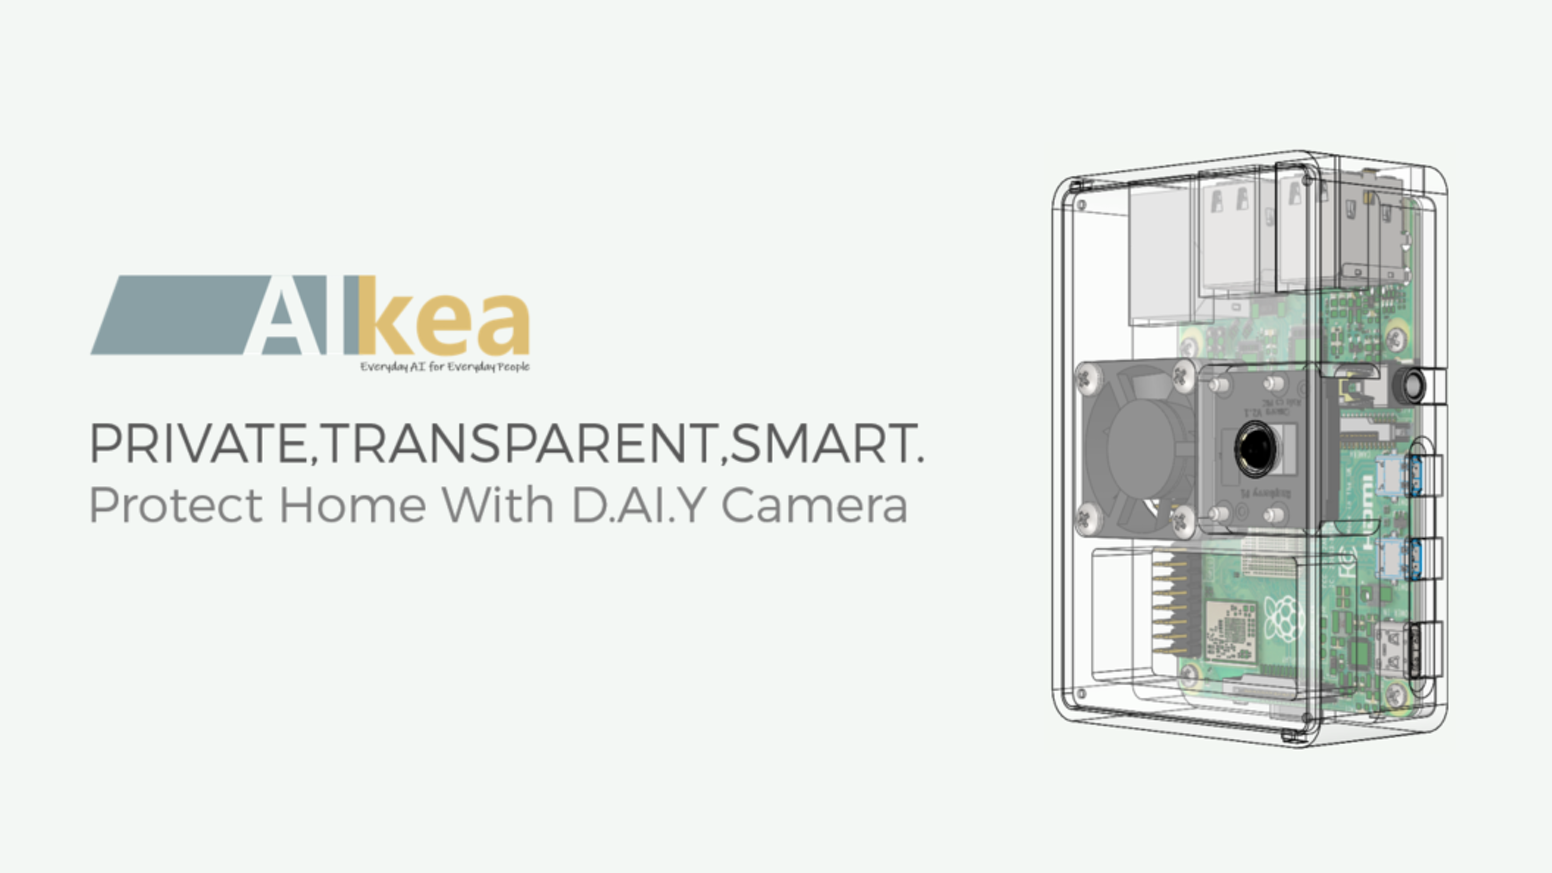 PRIVATE, TRANSPARENT, SMART - Protect Home With D.AI.Y Camera that puts your privacy first.